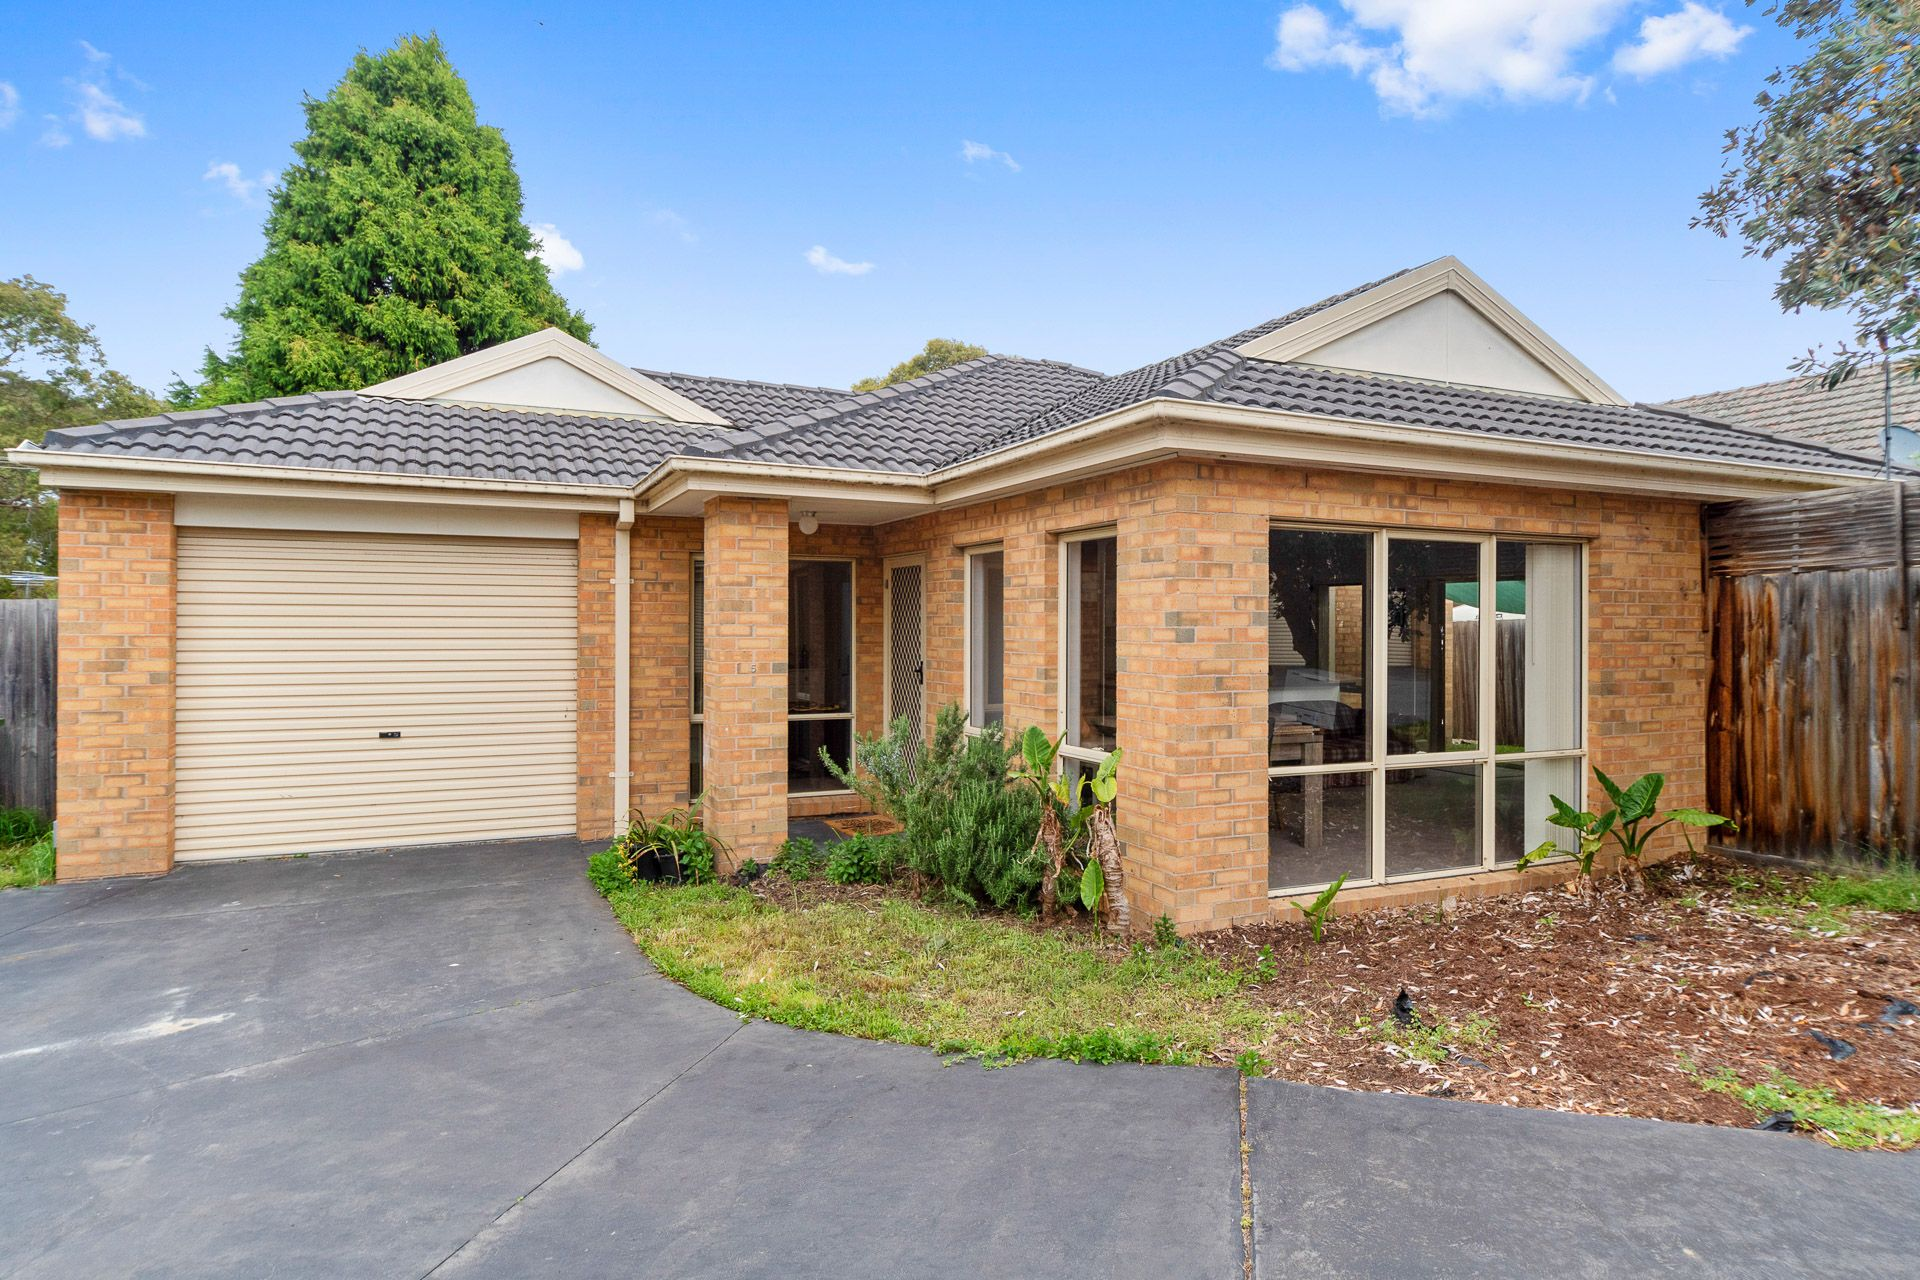 5/330 Stony Point Road, CRIB POINT, VIC, 3919 - Image